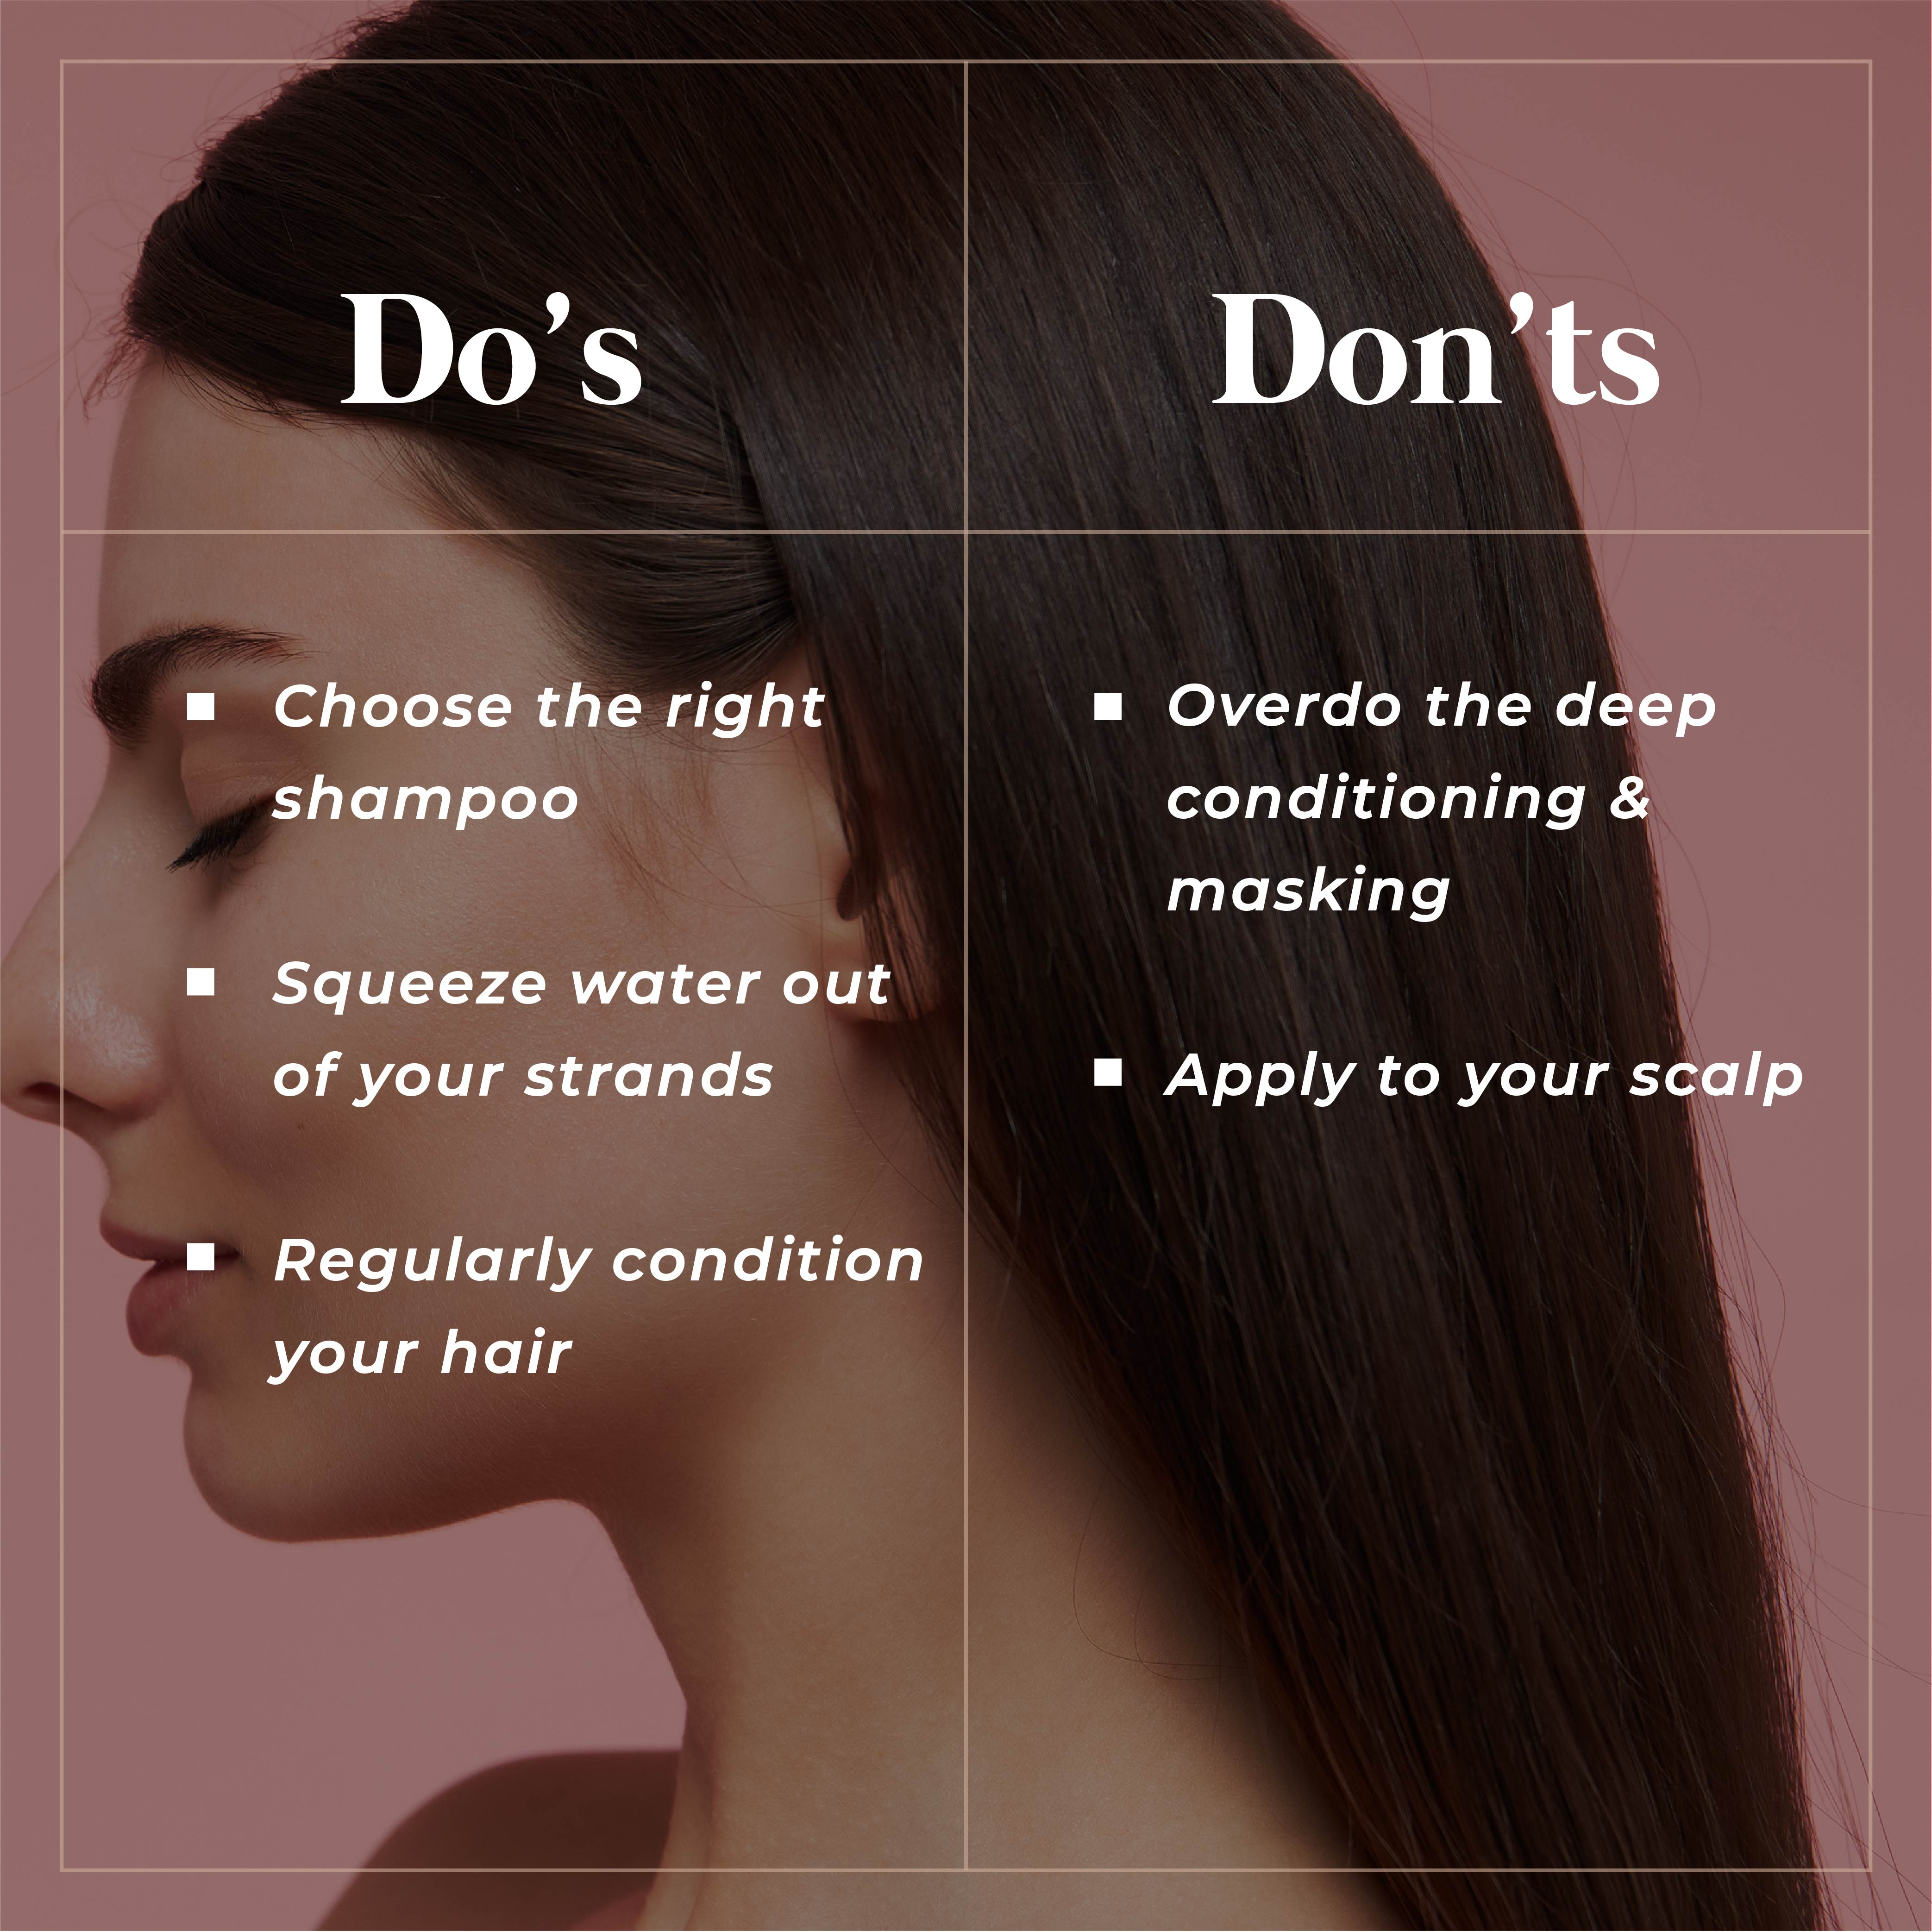 This is an image of the do's and donts of hair conditioner